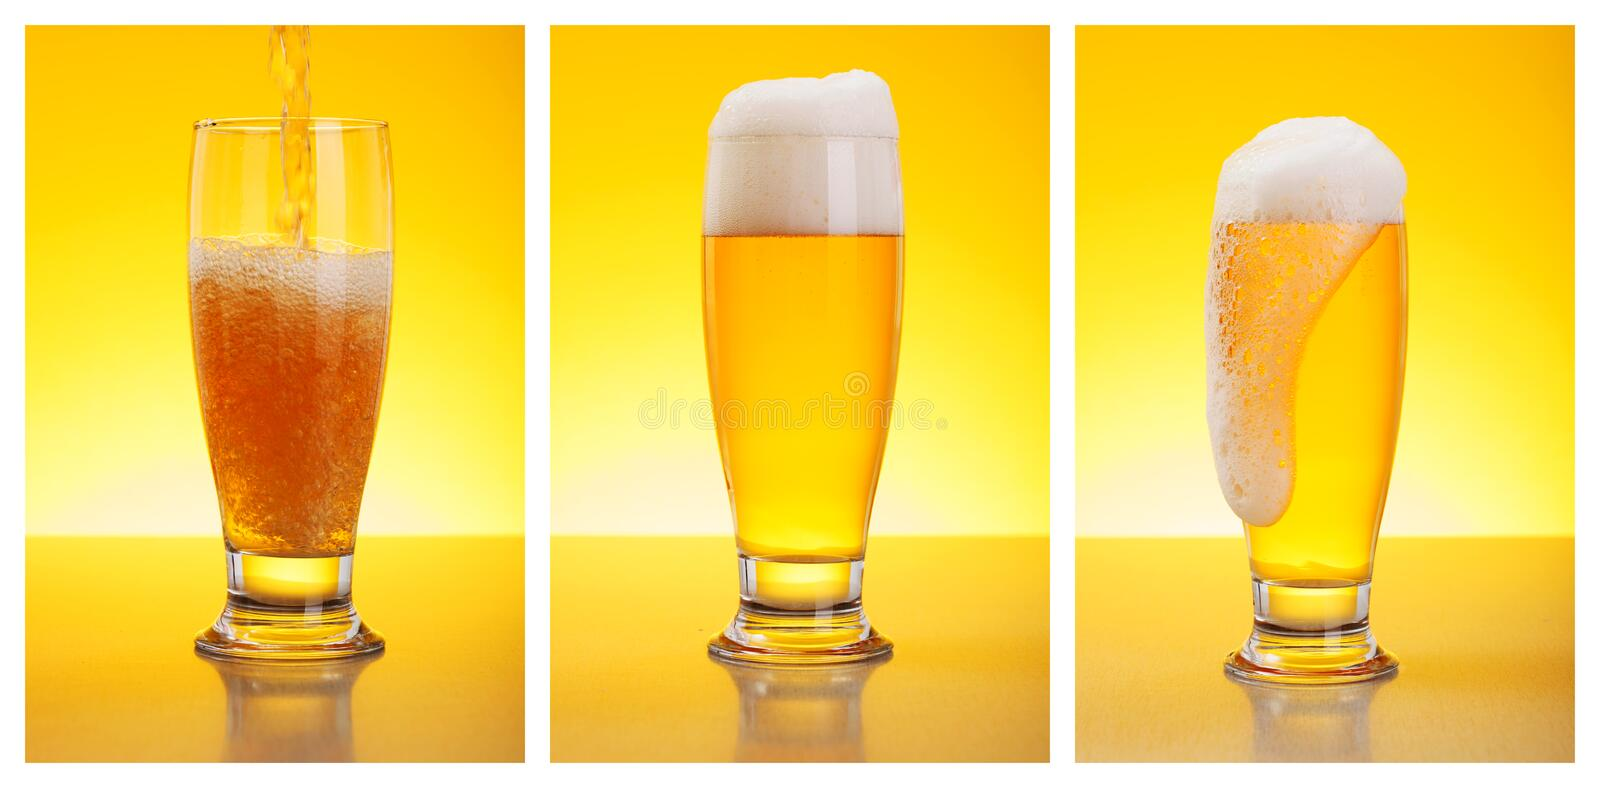 Pouring Beer. Three steps of pouring beer in glass royalty free stock photos